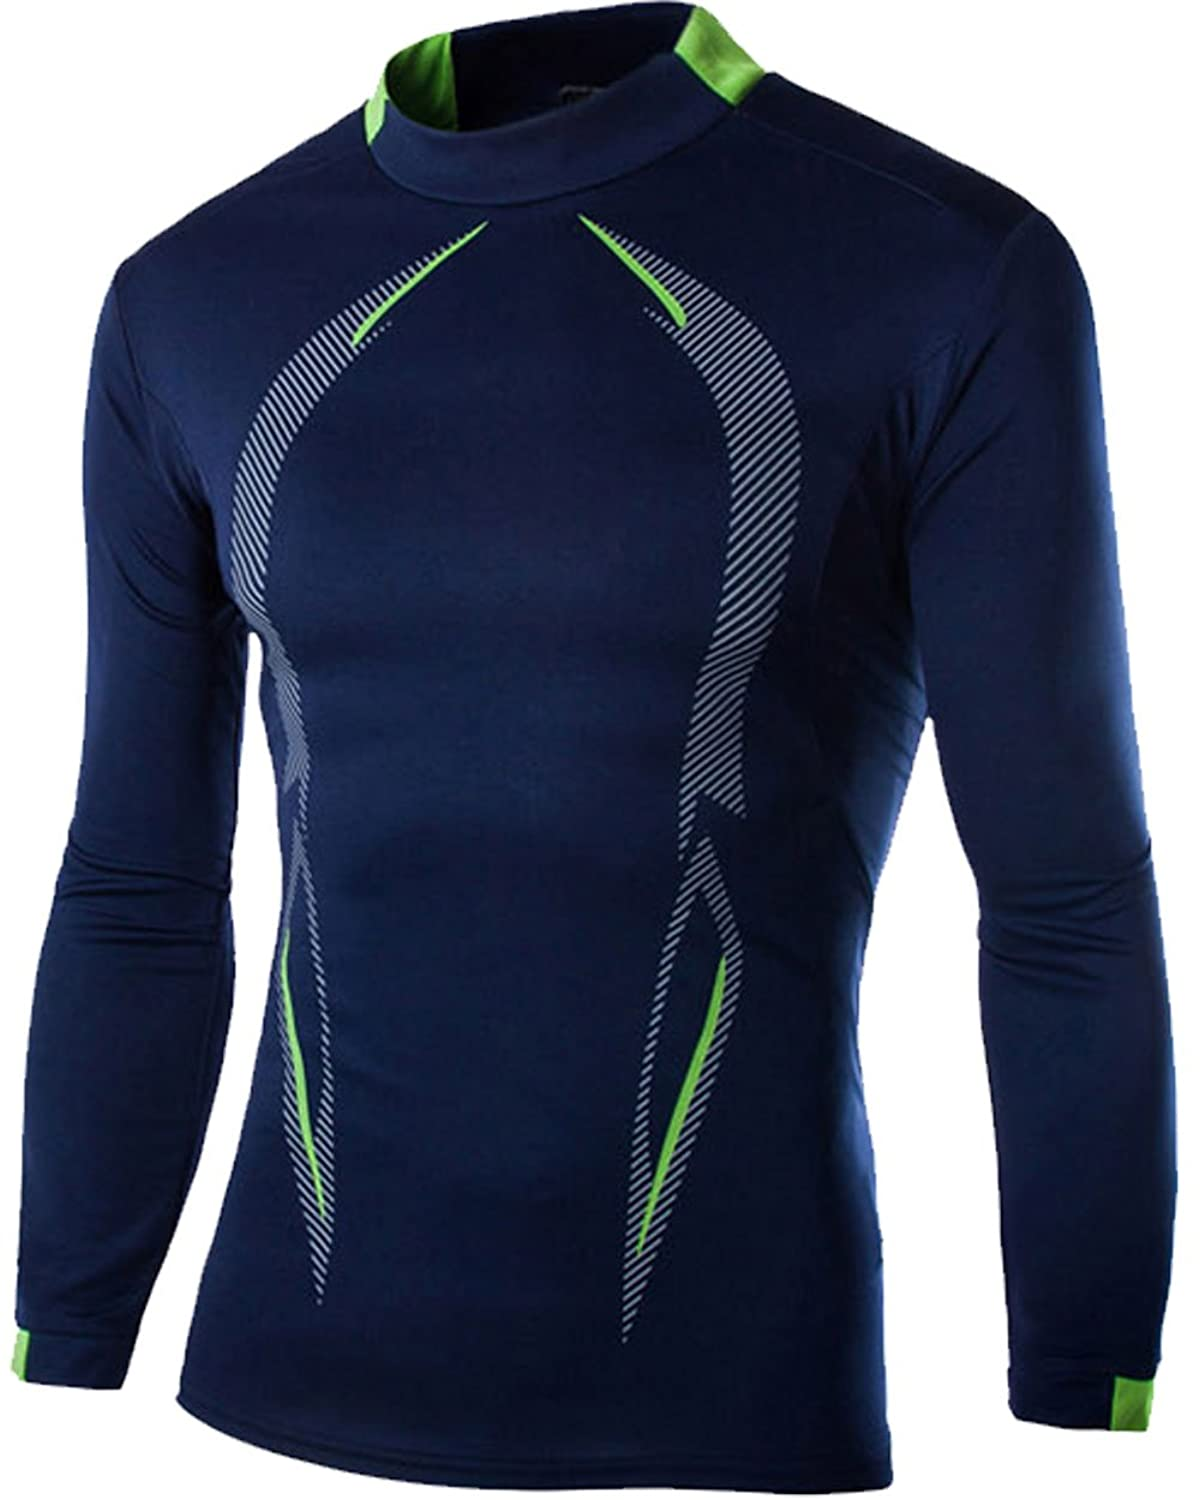 SWORLD Men's Long-Sleeve Compression Tight Base Layer Breathable Shirt